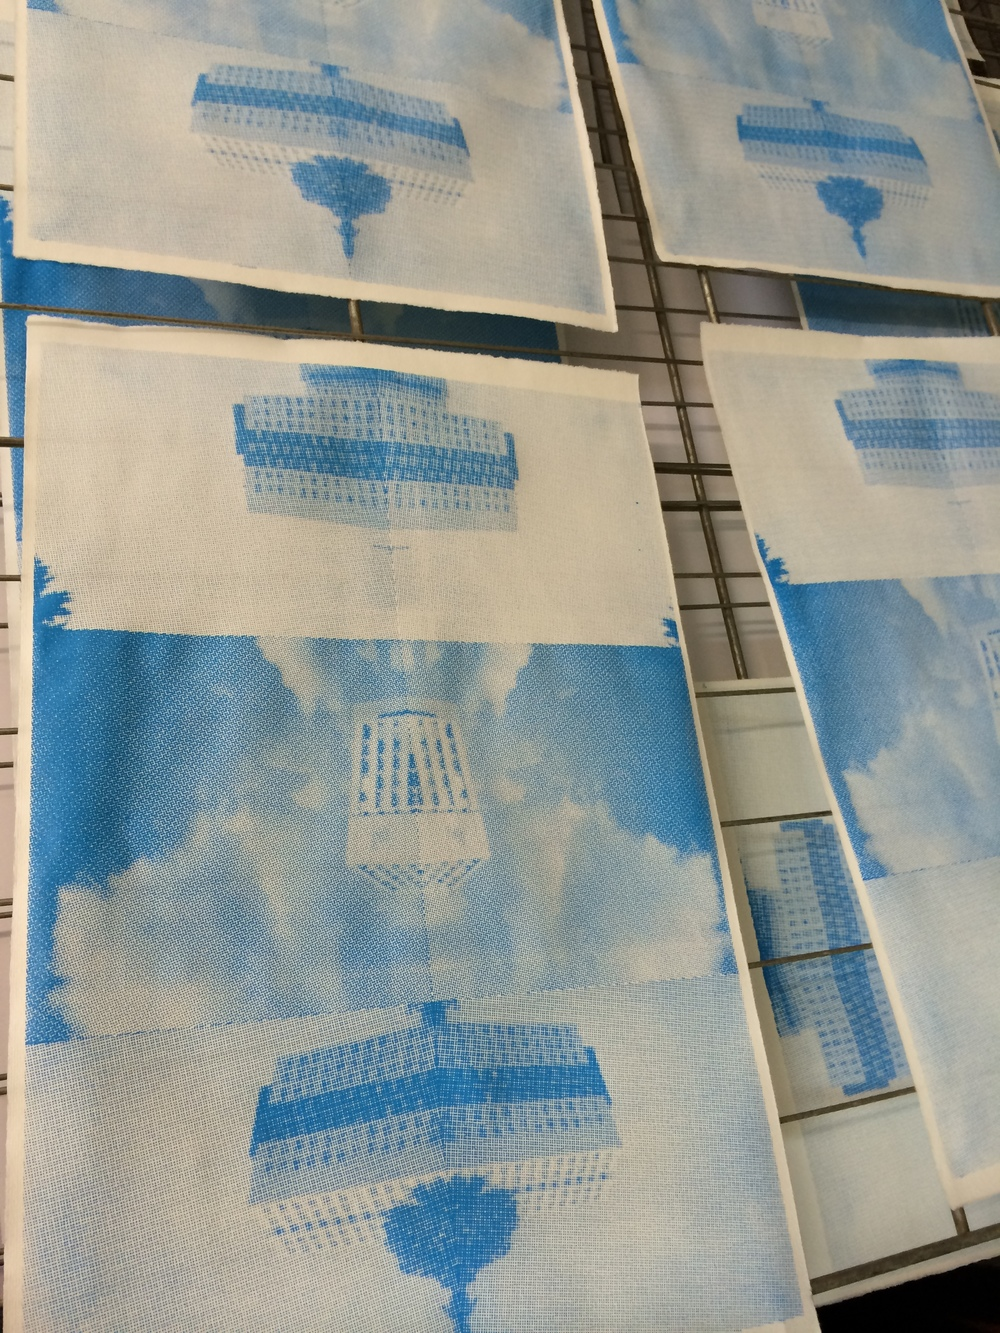 8/23 Screen prints from building photos.